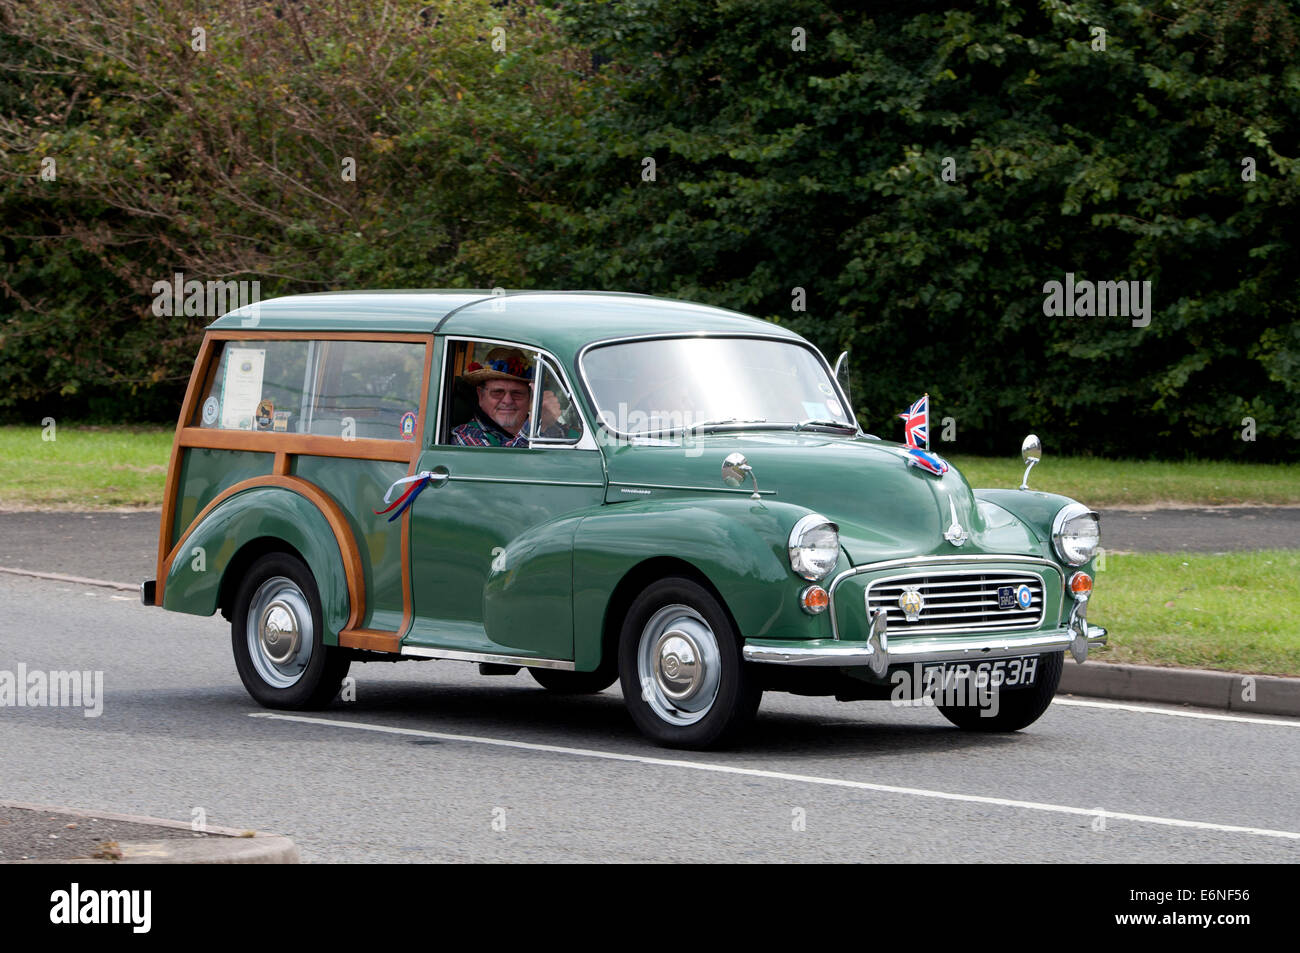 Morris Minor Traveller on the Fosse Way road, Warwickshire, UK - Stock Image